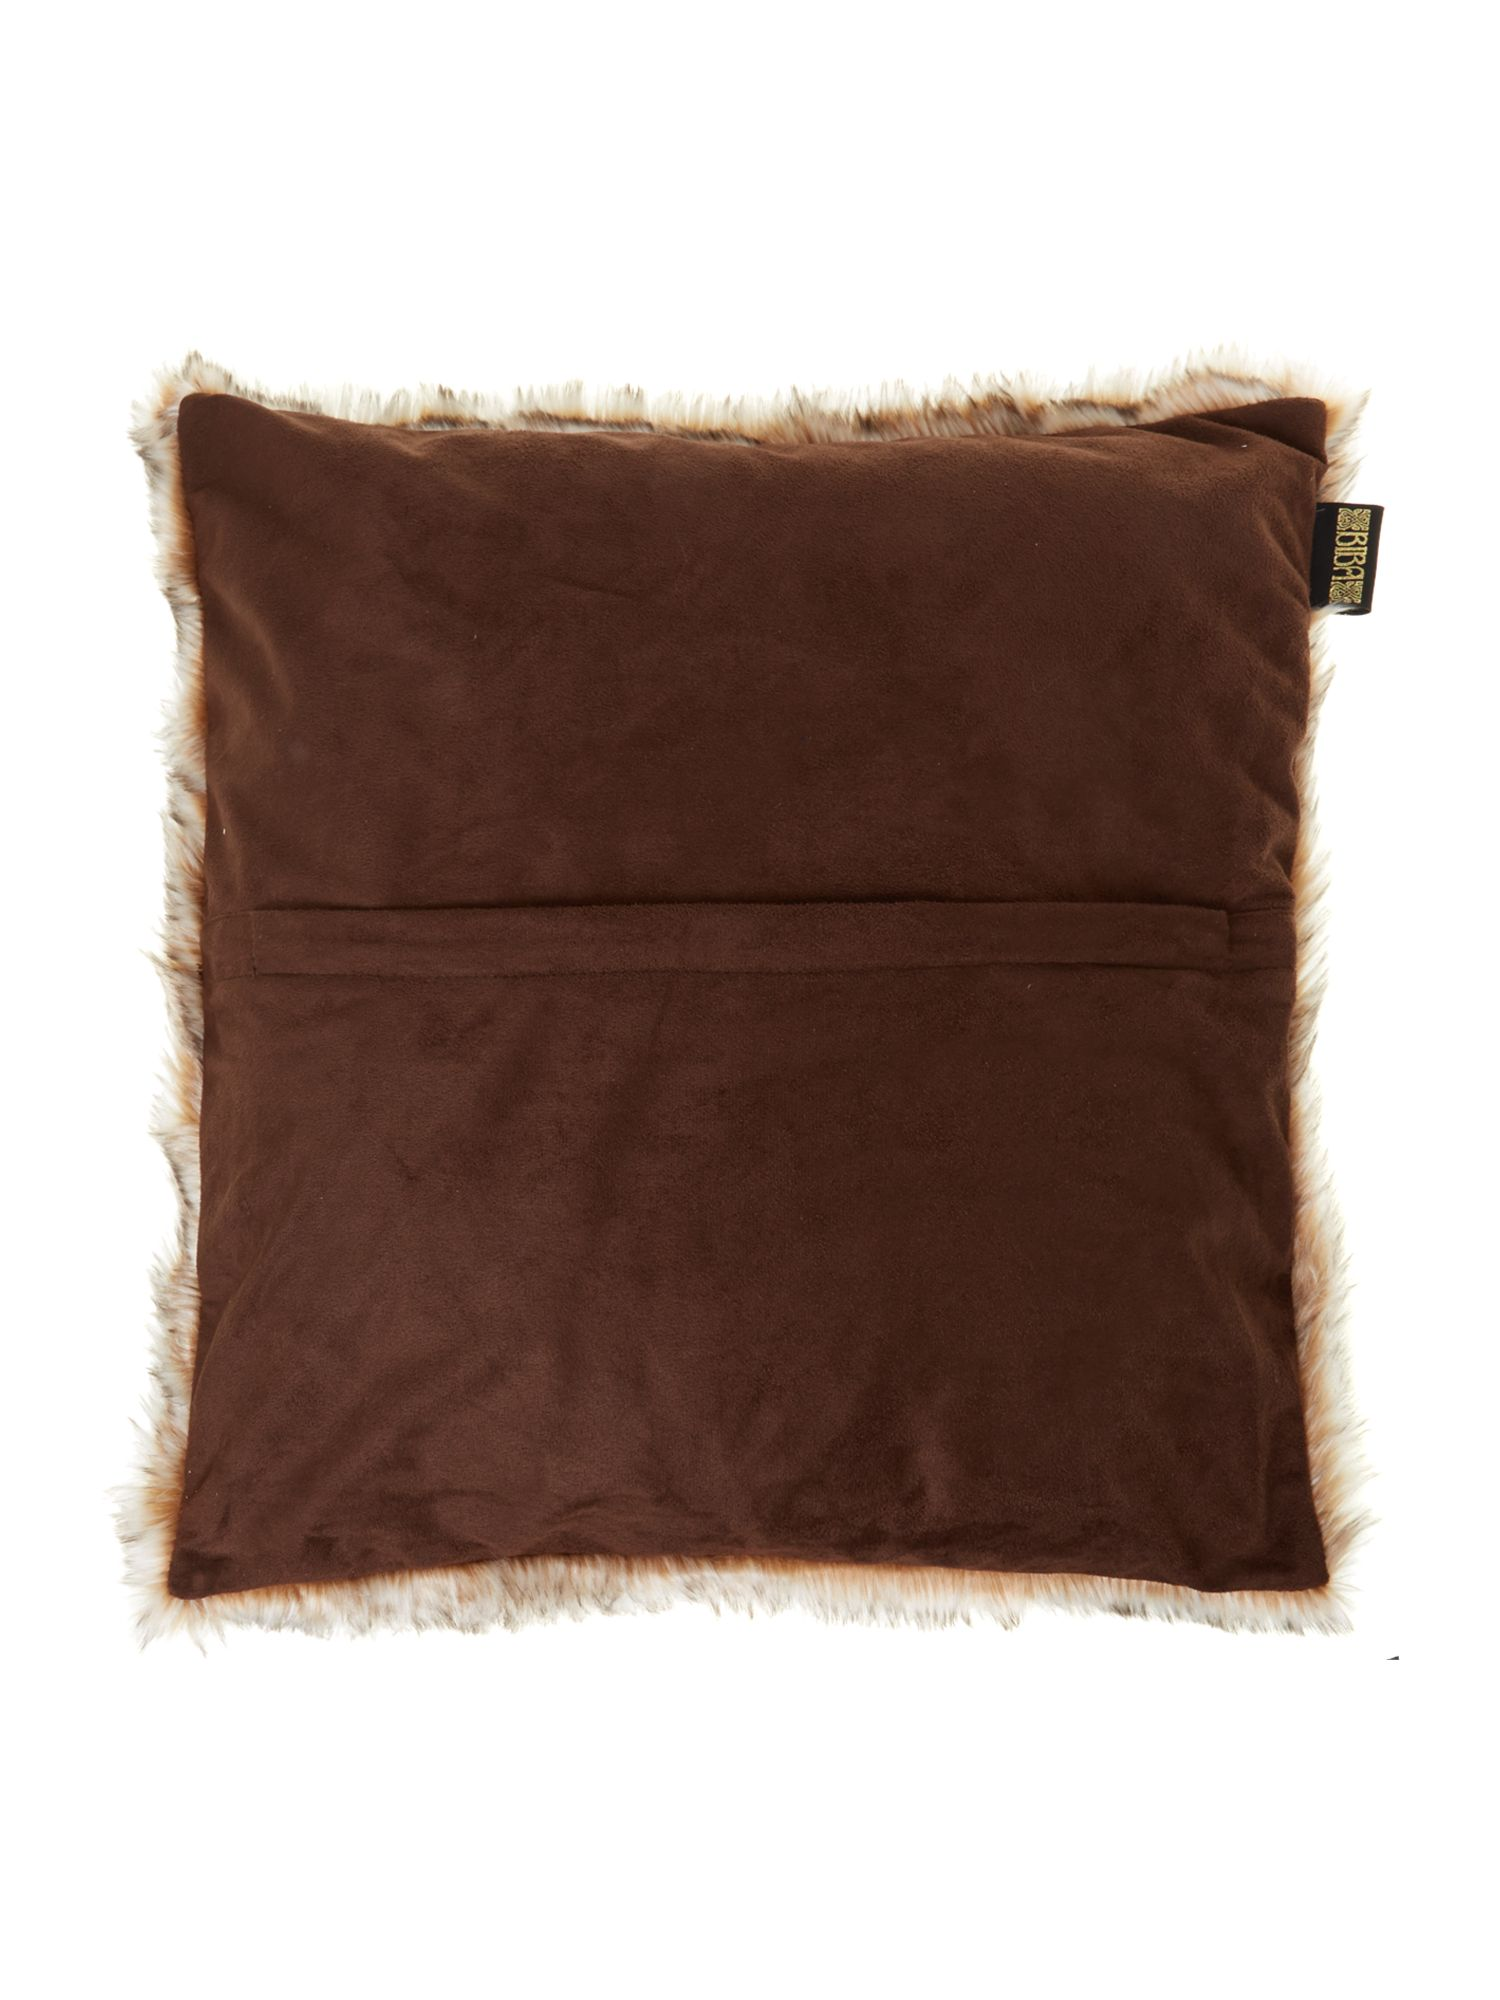 Plush brown fur cushion